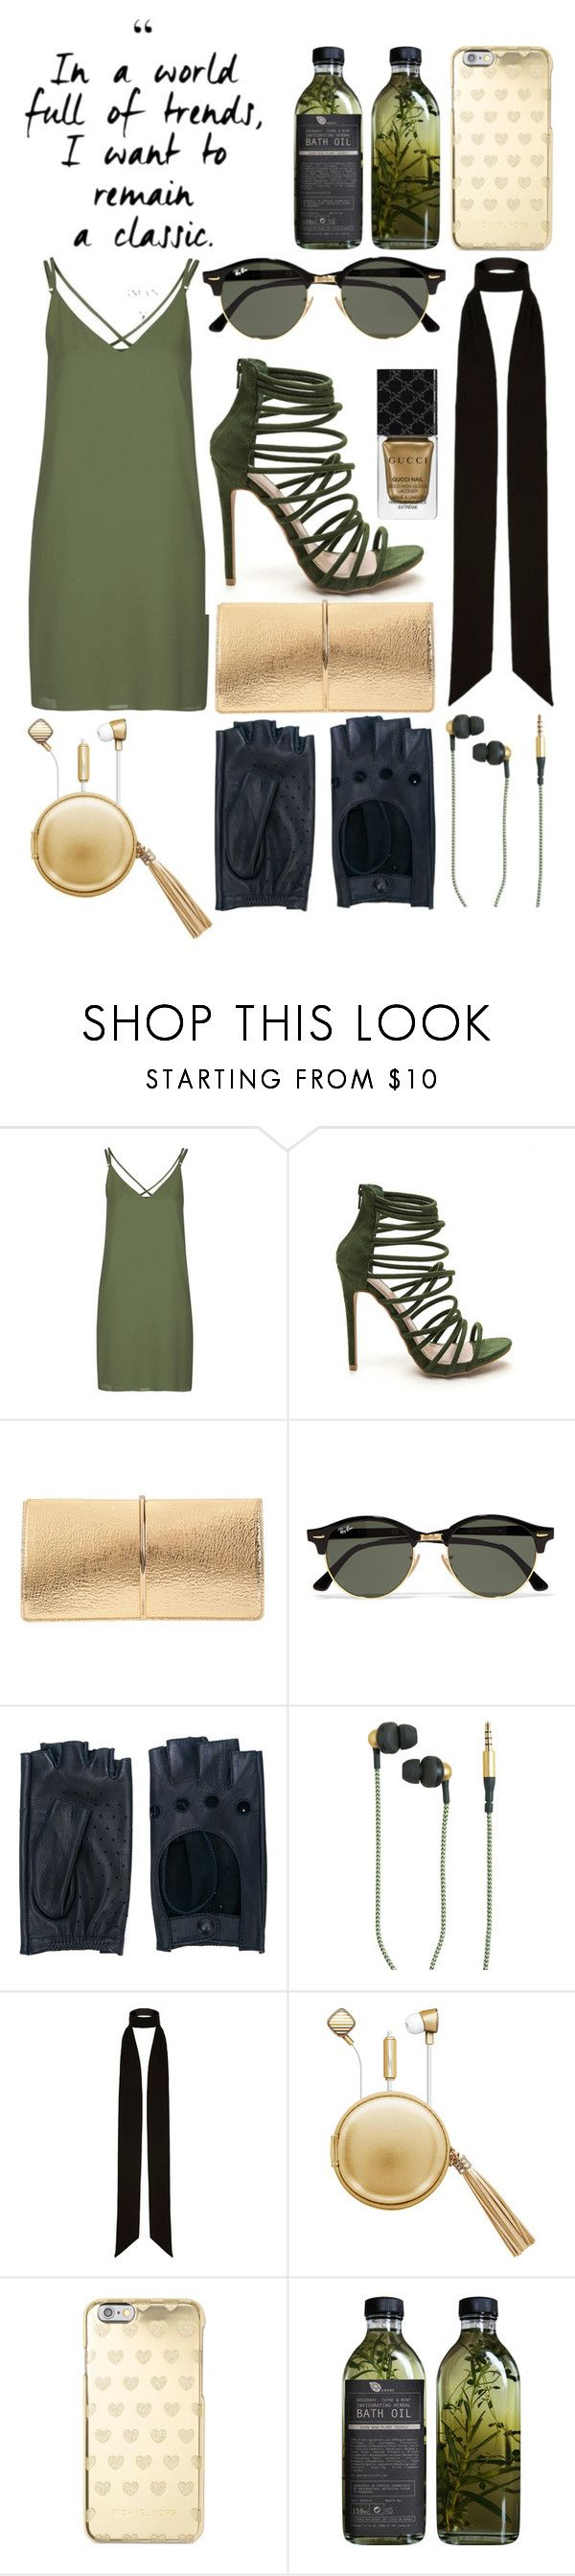 """""""Military style"""" by lynn-frank ❤ liked on Polyvore featuring Topshop, Nina Ricci, Ray-Ban, Zanellato, Kreafunk, River Island, The Macbeth Collection, Michael Kors, AMBRE and Gucci"""